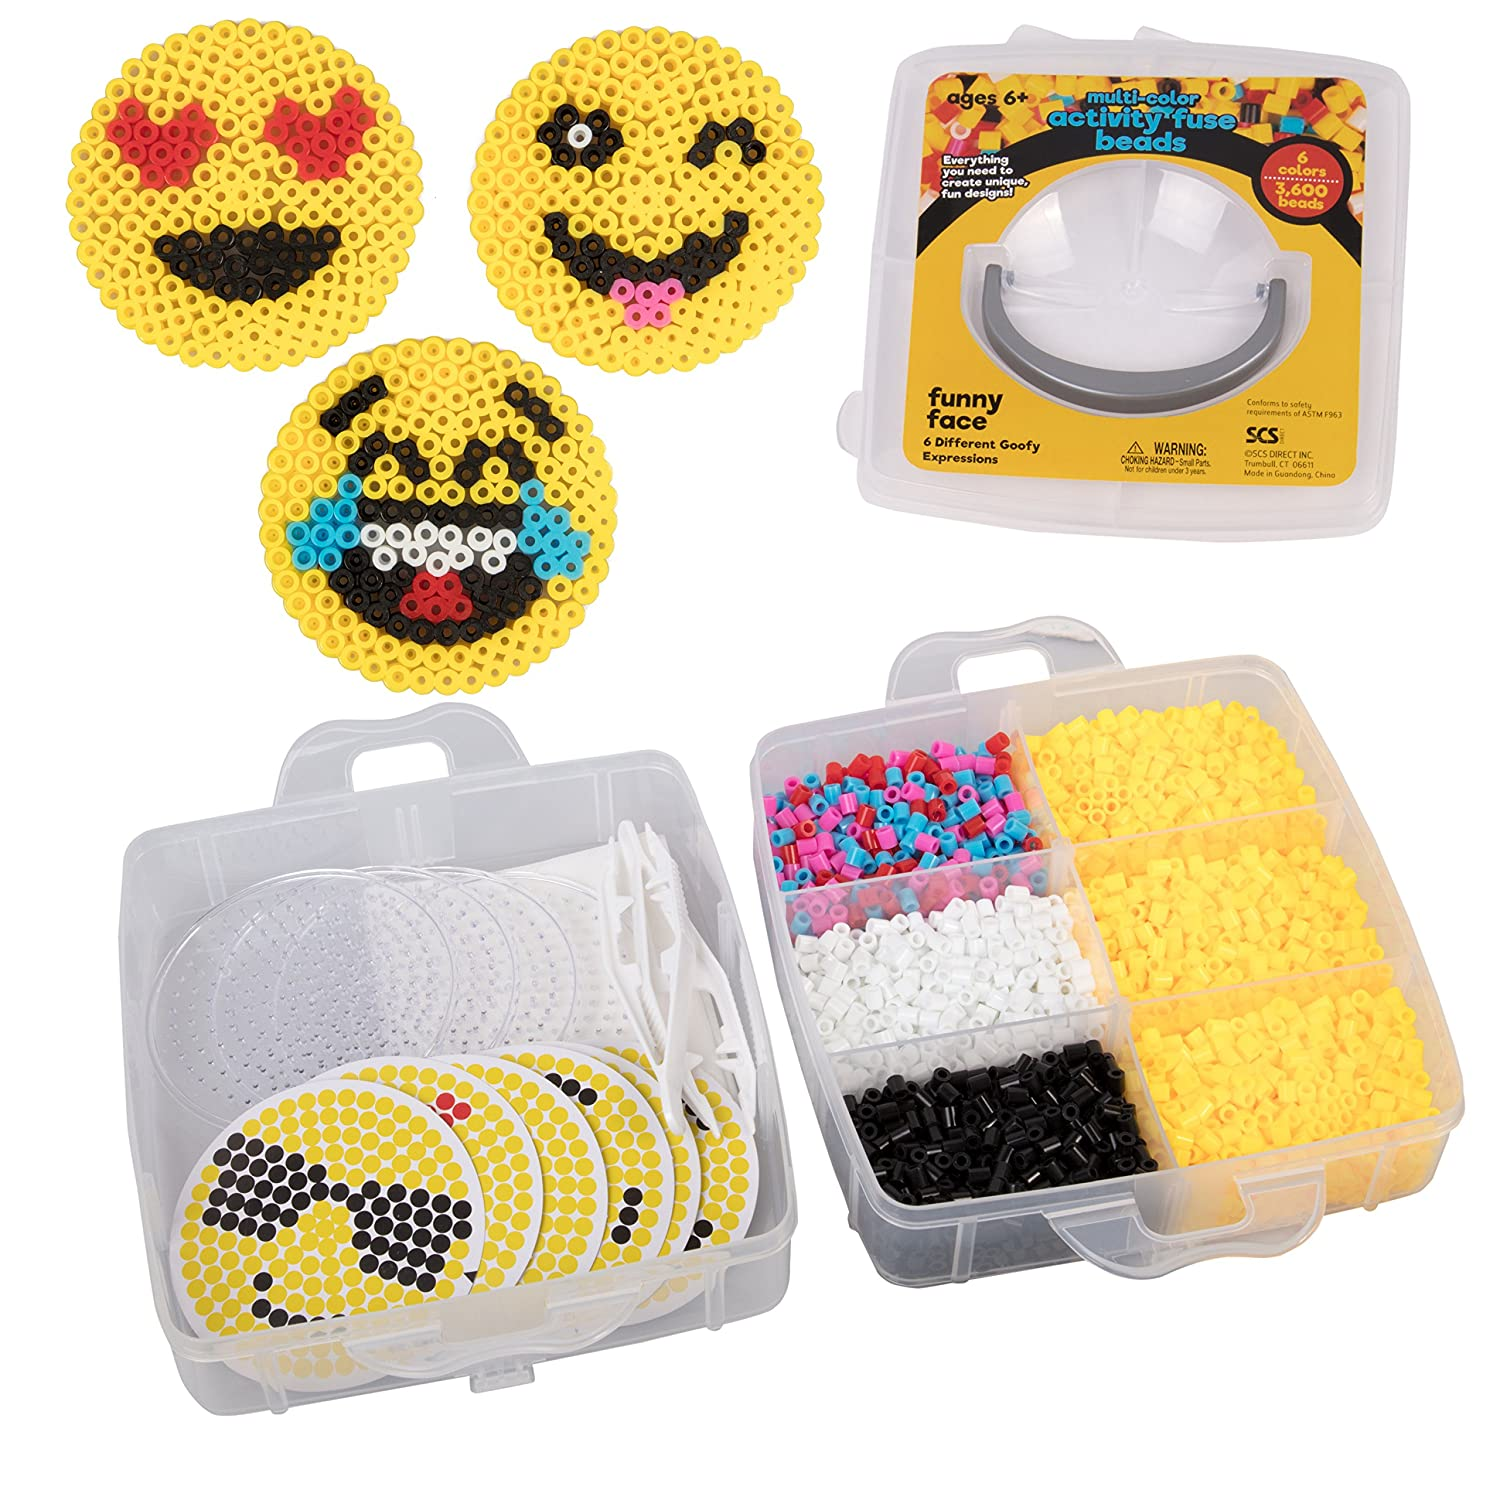 Emoji Smiley Face Fuse Beads - 6 Different Emojis - 3600pcs Beads (6 Colors), Tweezers, Peg Boards, Ironing Paper, Case - Works with Perler Beads Sculpt Pro